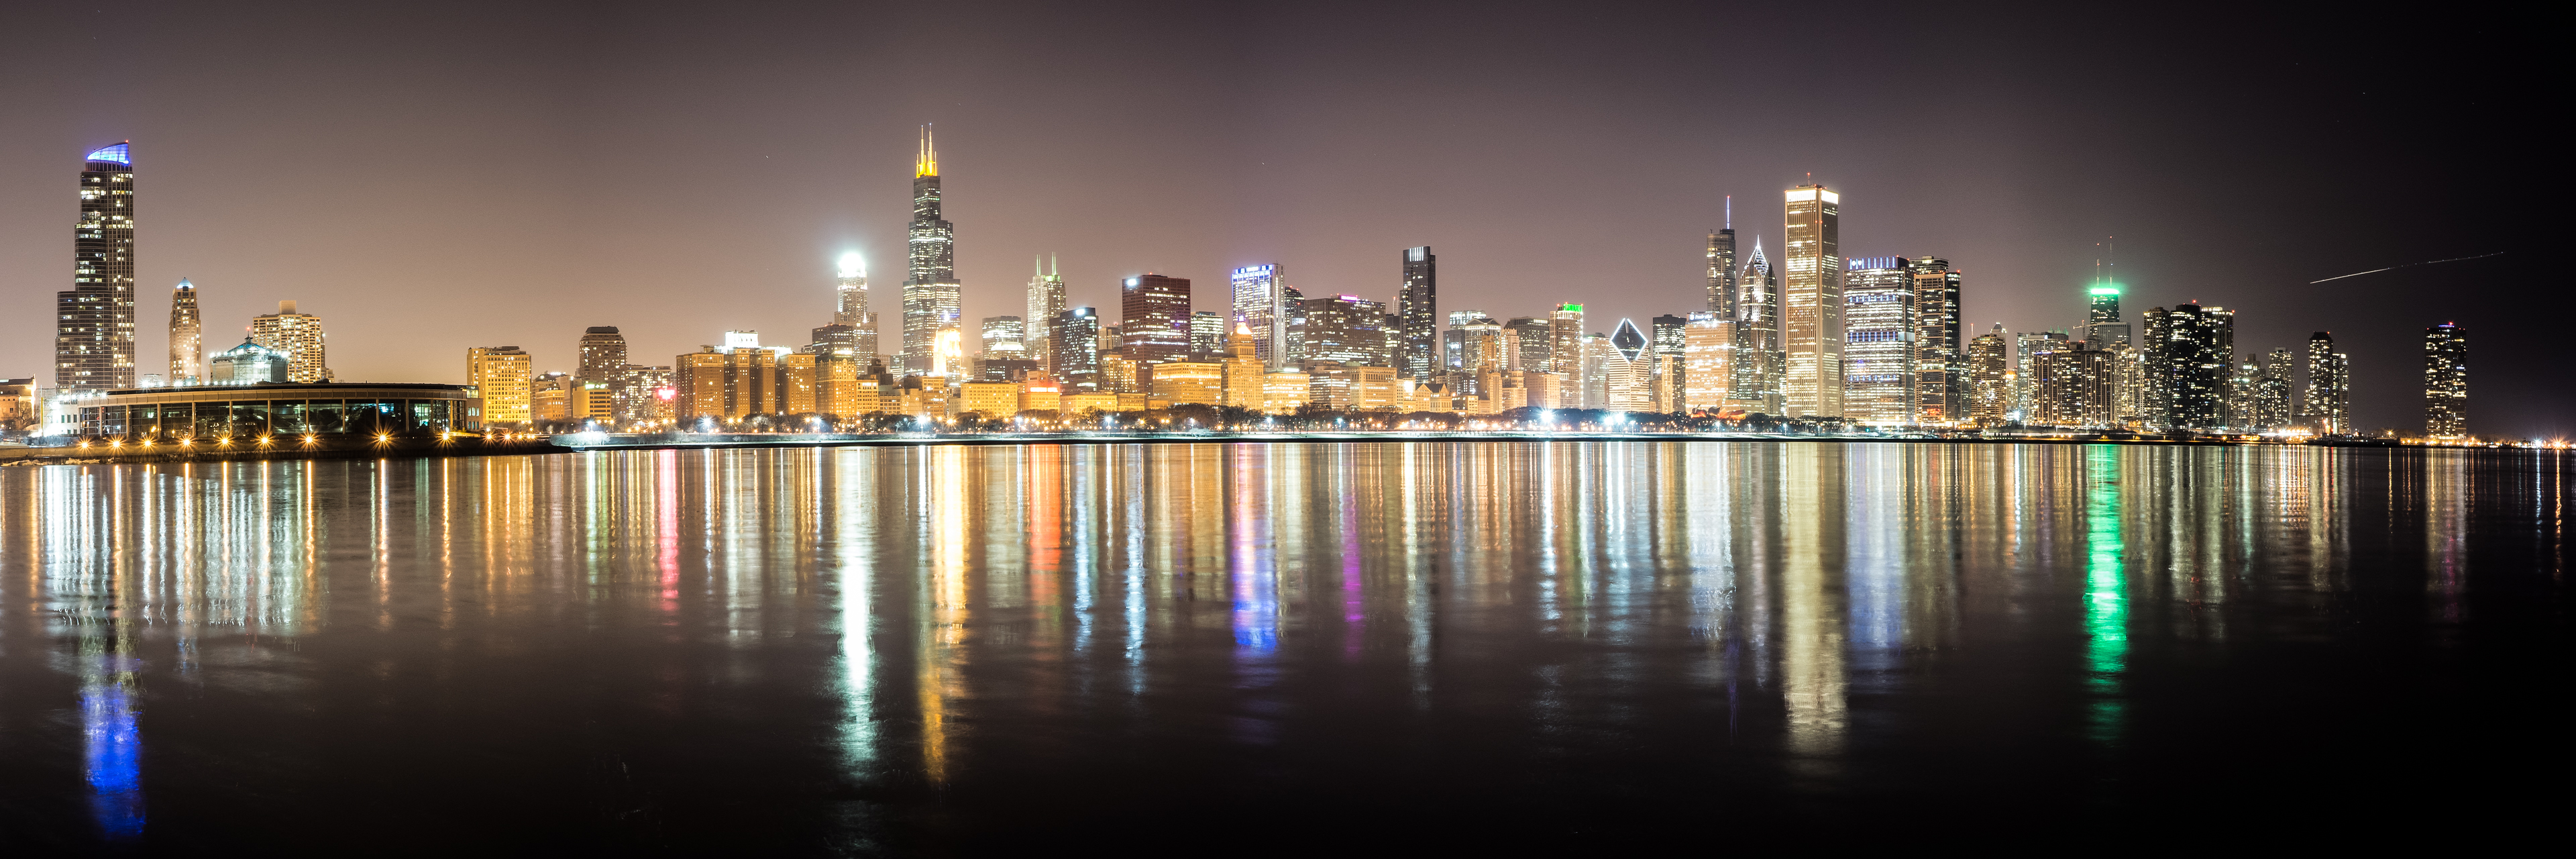 A long Exposure of Chicago's skyline off of Lake Michigan at night.